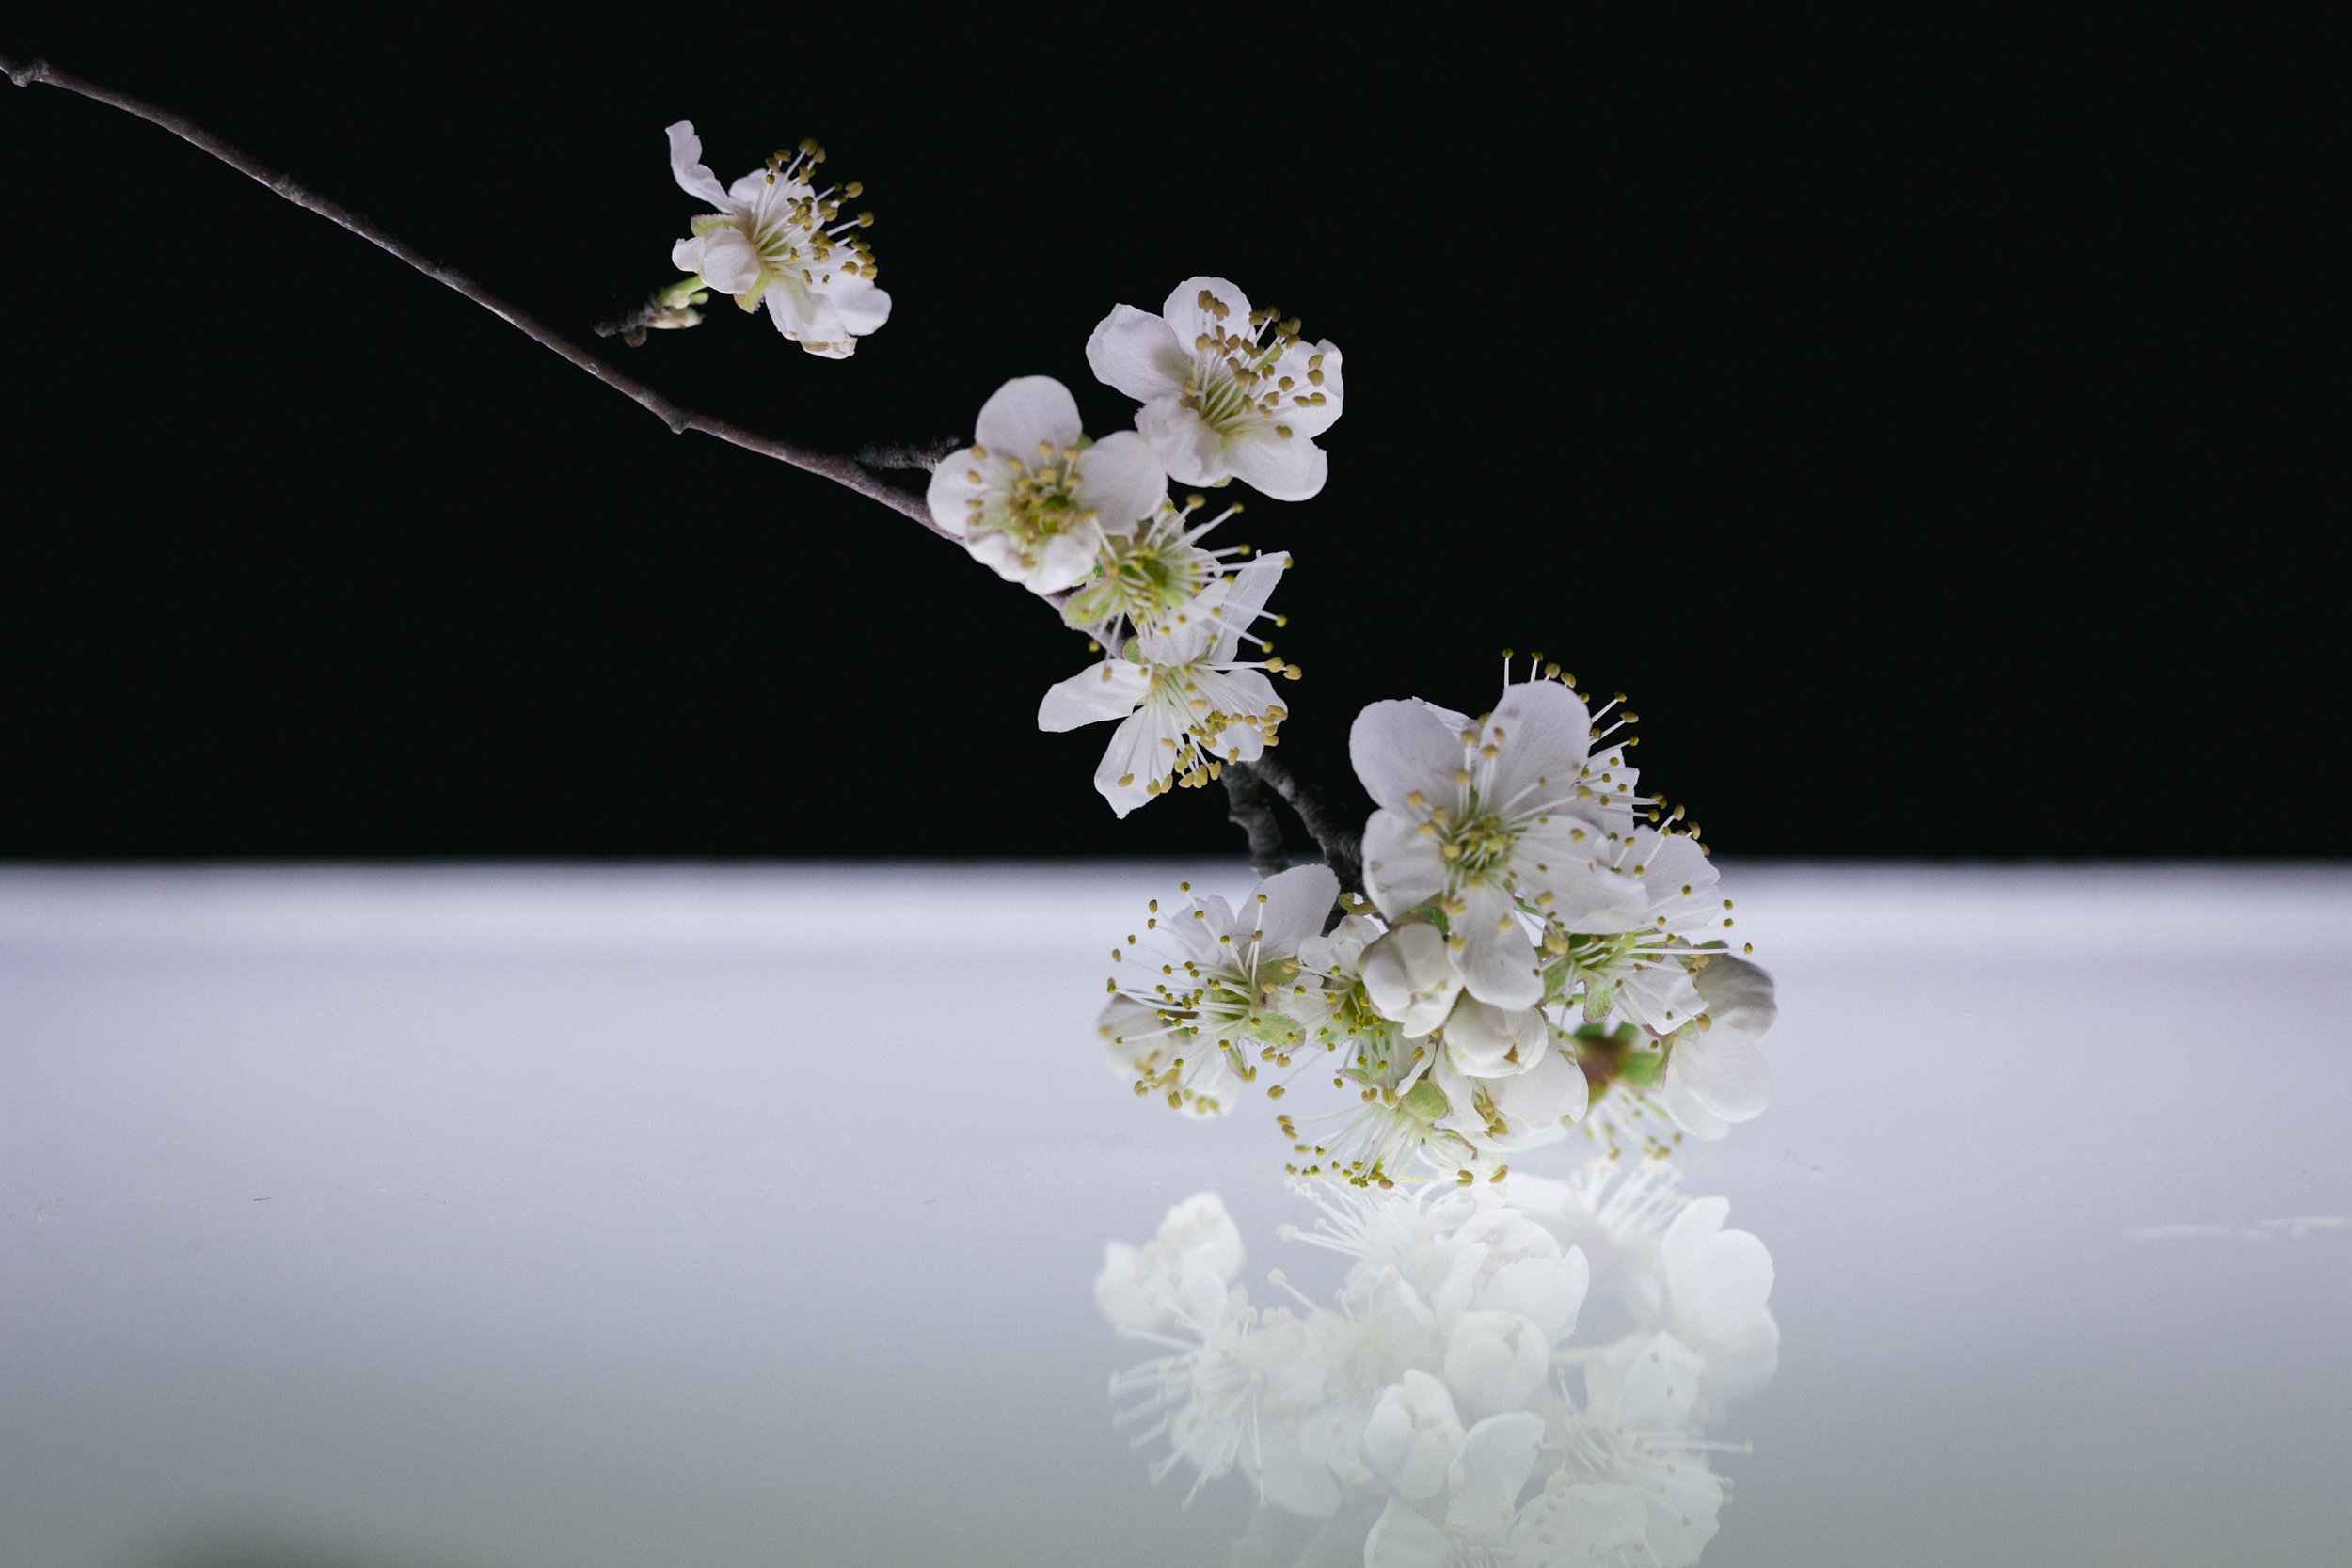 Janelle.grace.com - Floral photography with lightbox-3.jpg